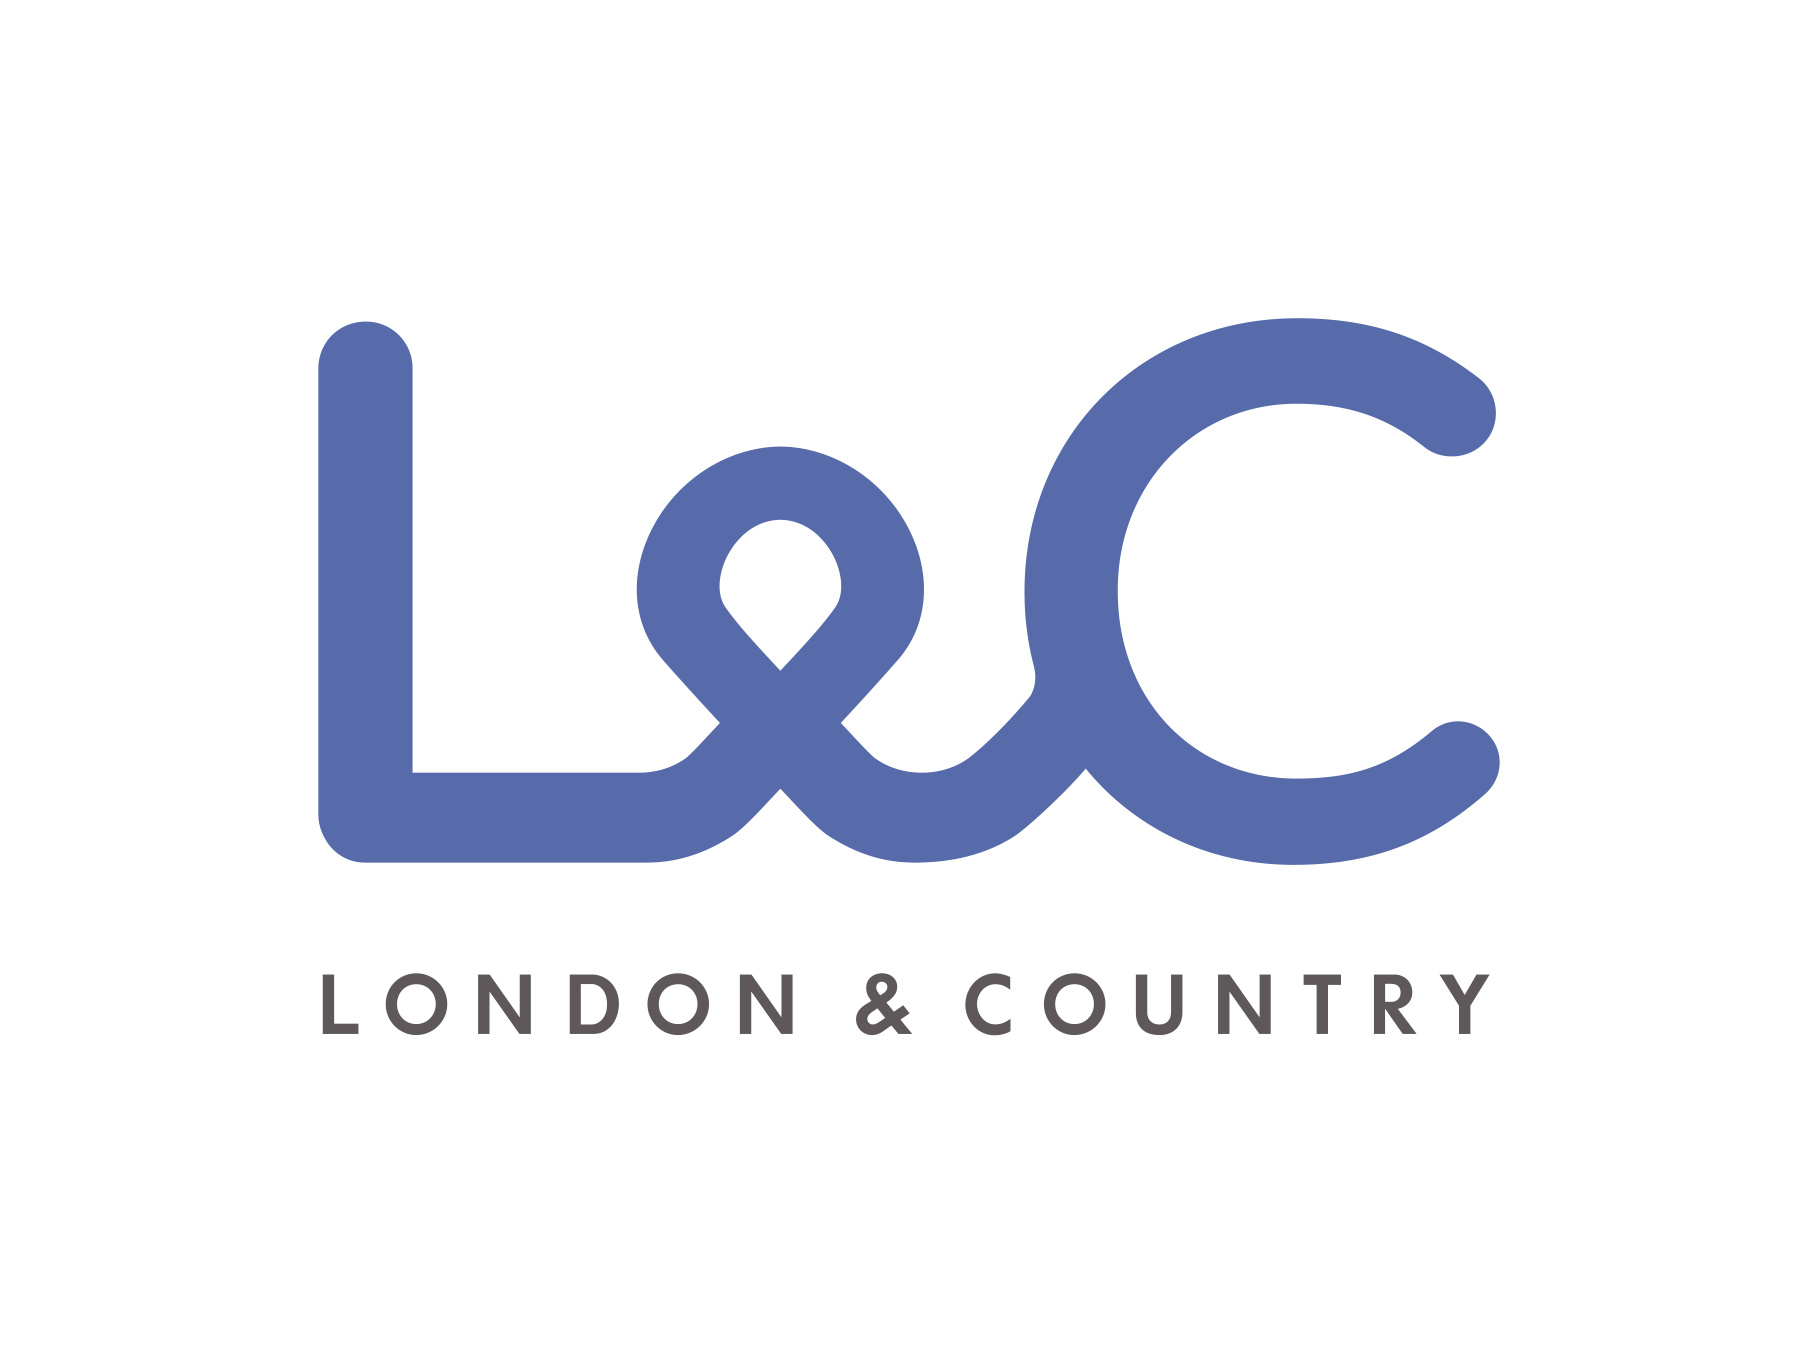 LC LOGO RGB 2115 PRP PS planning permission new house vs extension homeowners alliance,Planning Permission For New House